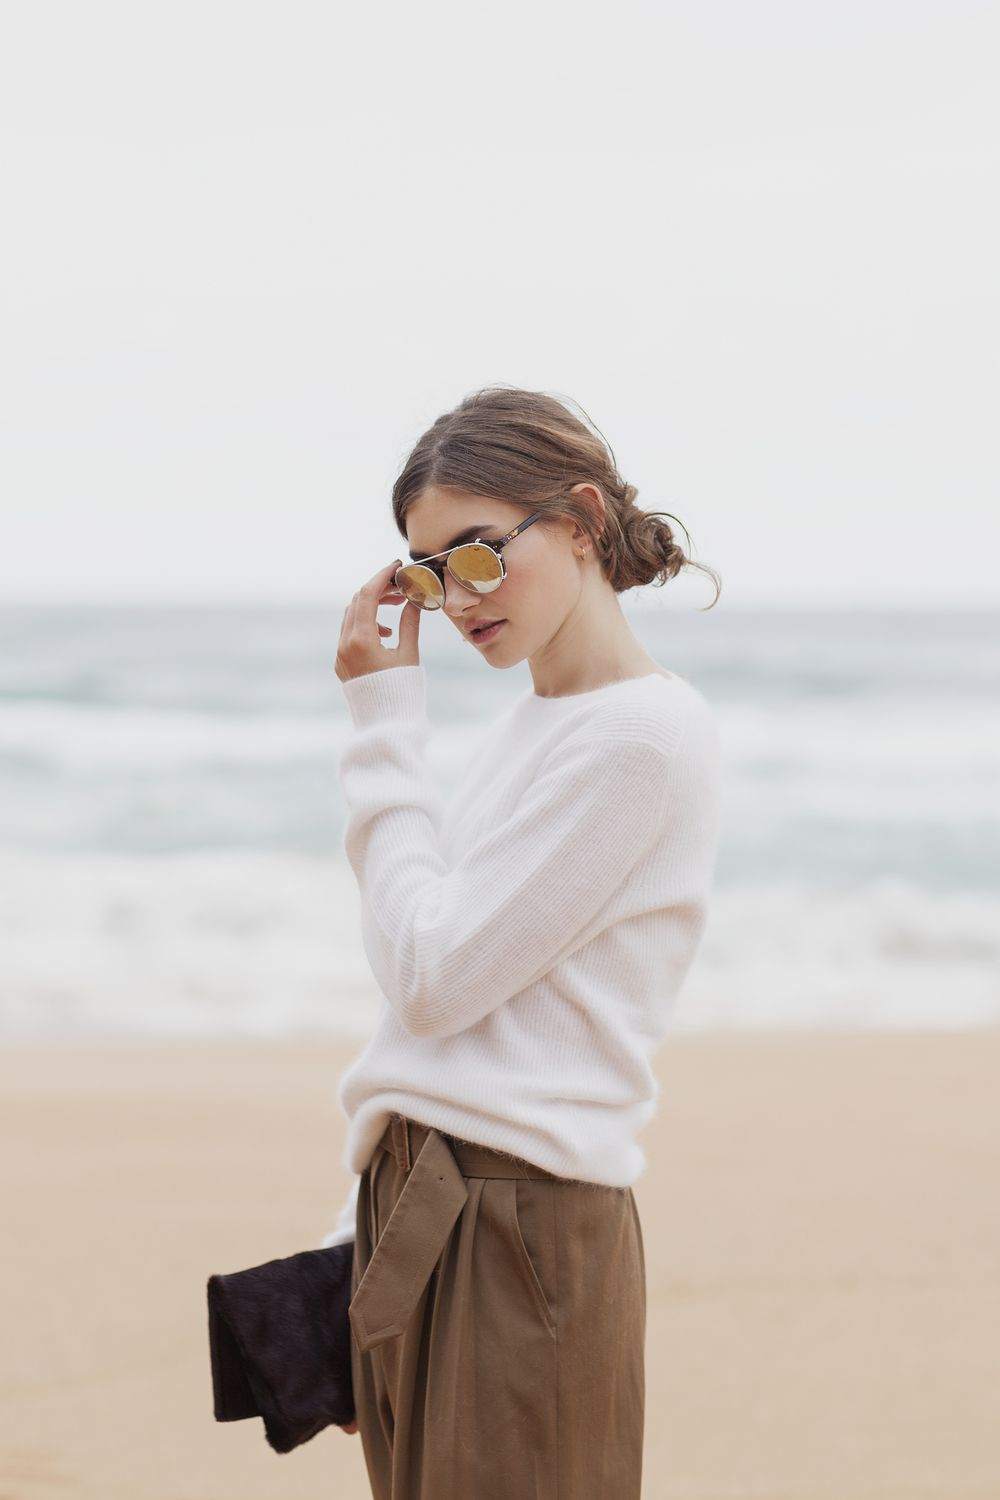 Garrett Leight x Thierry Lasry sunglasses from Bloodorange, Acne sweater  and clutch, Dries Van Noten trousers, Dieppa Restrep...